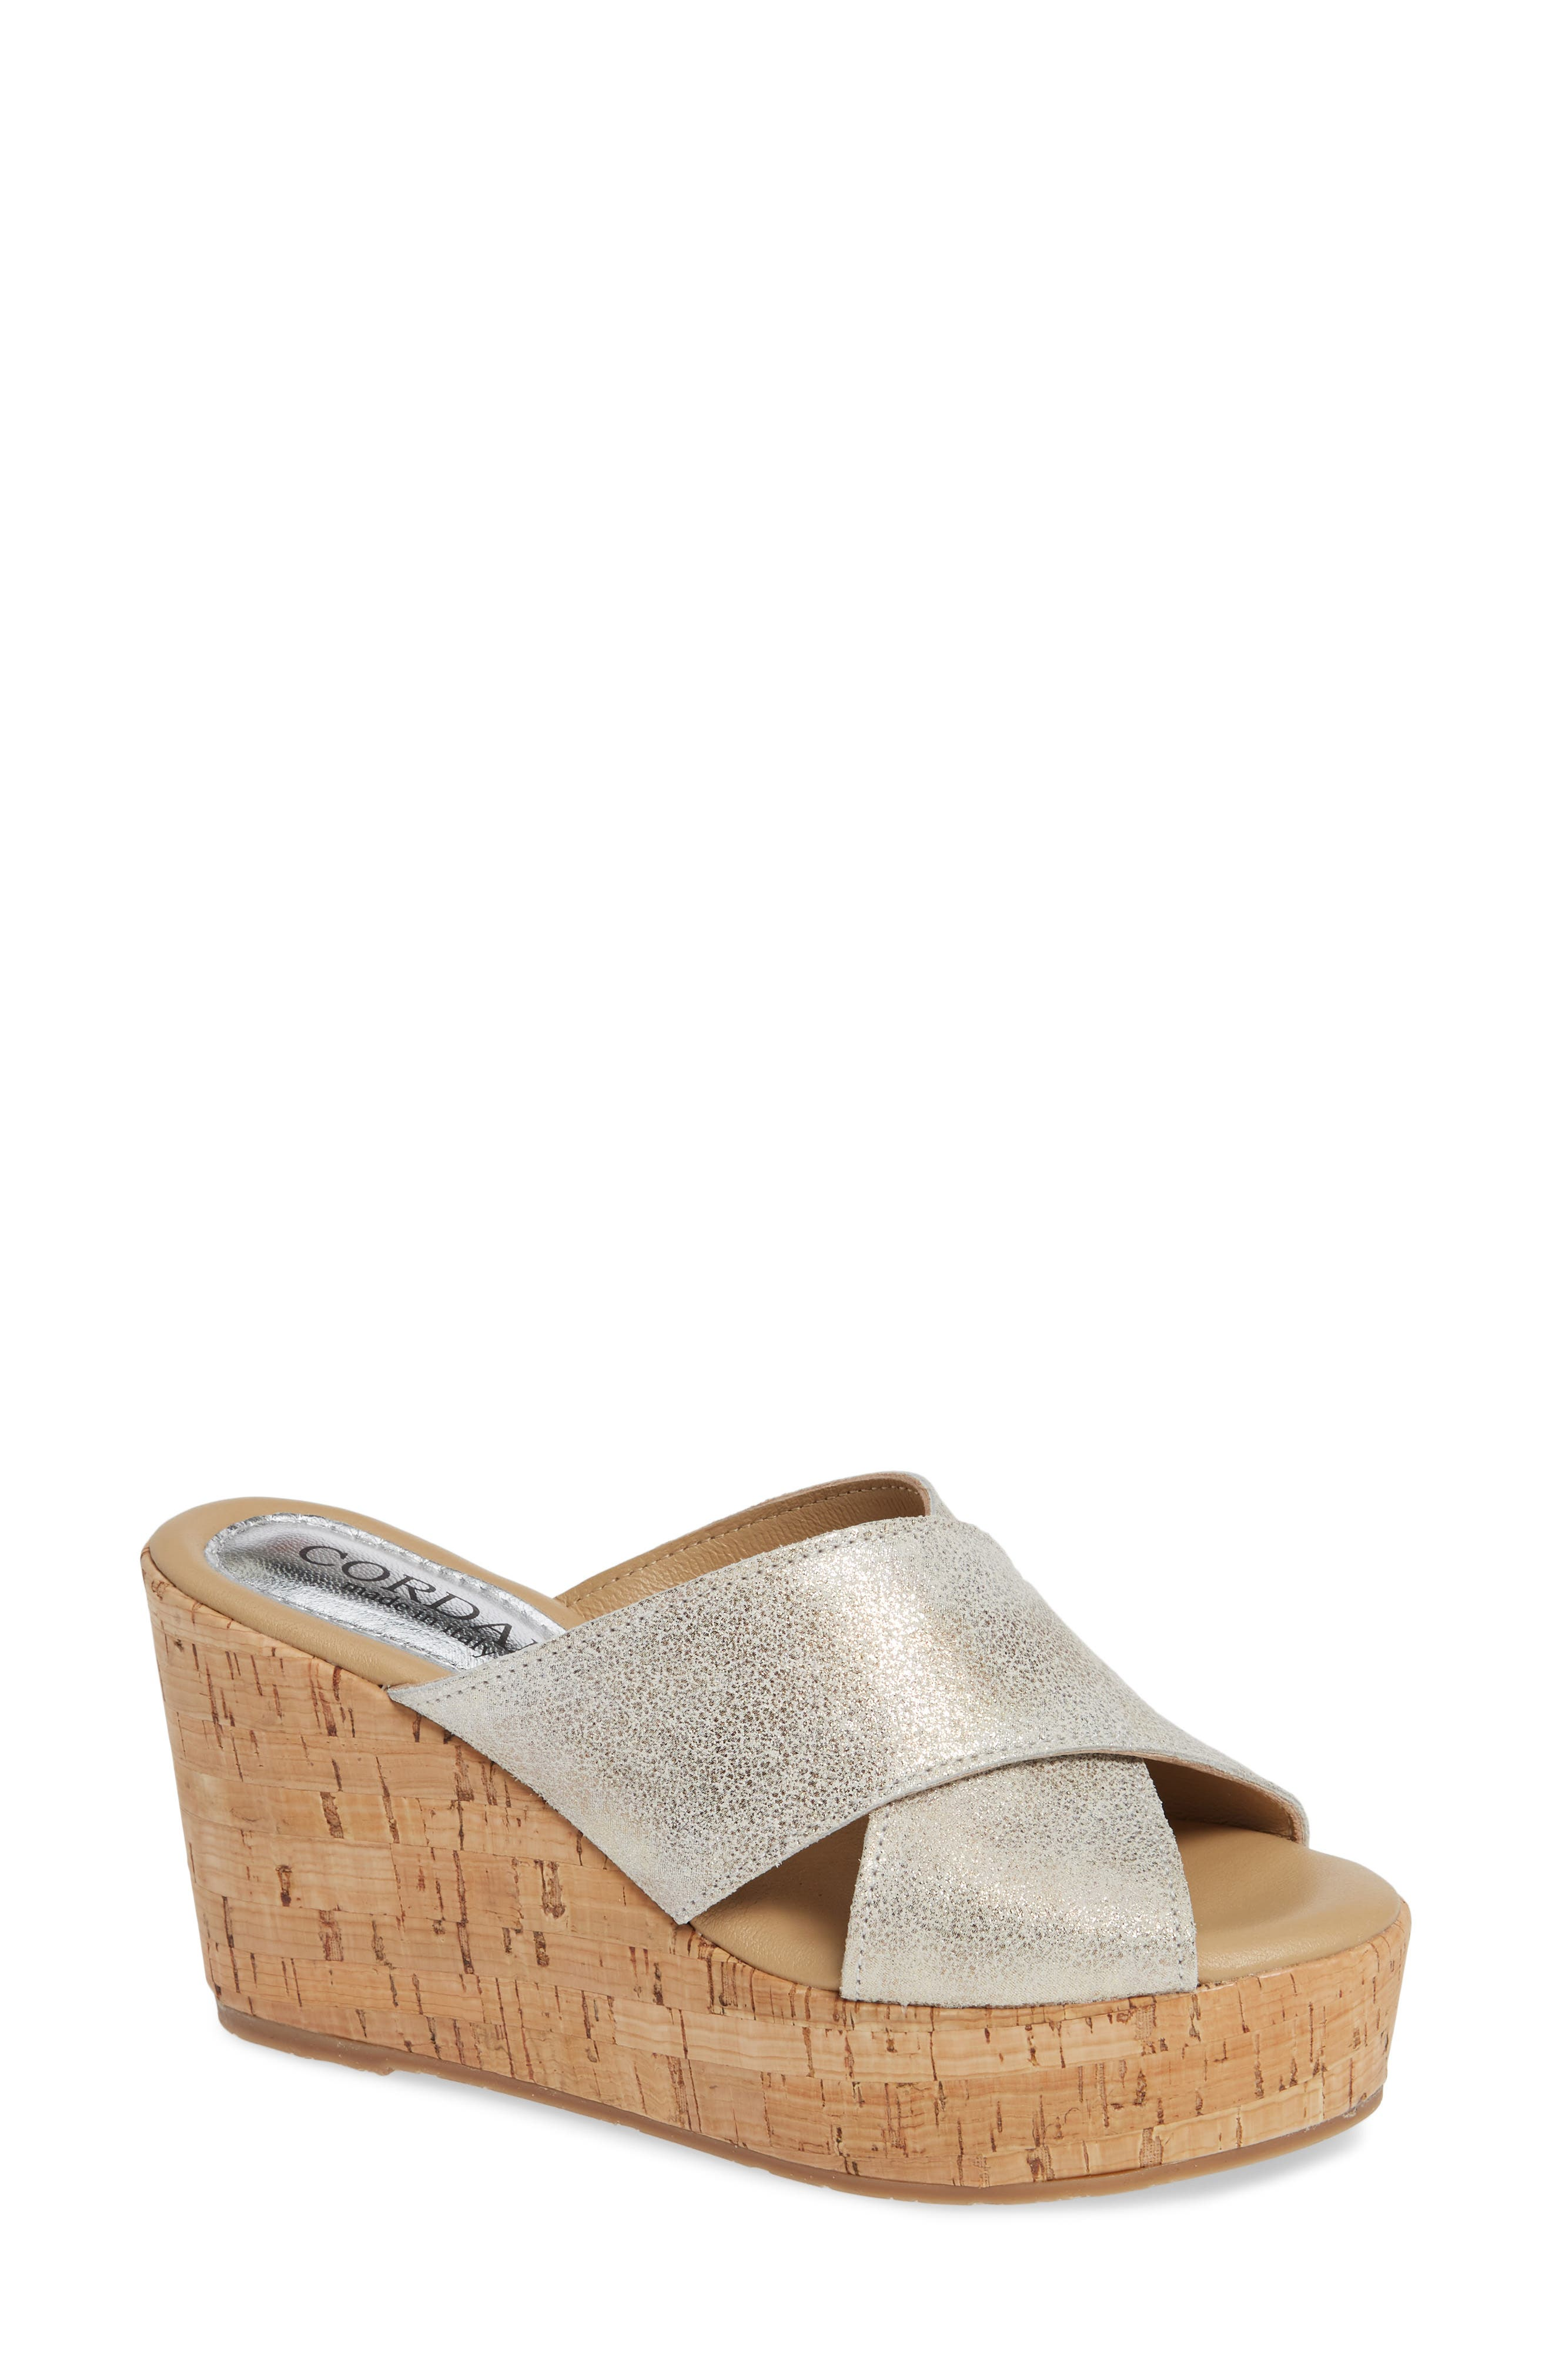 Jan Platform Wedge Slide Sandal,                             Main thumbnail 1, color,                             PEARL SUEDE